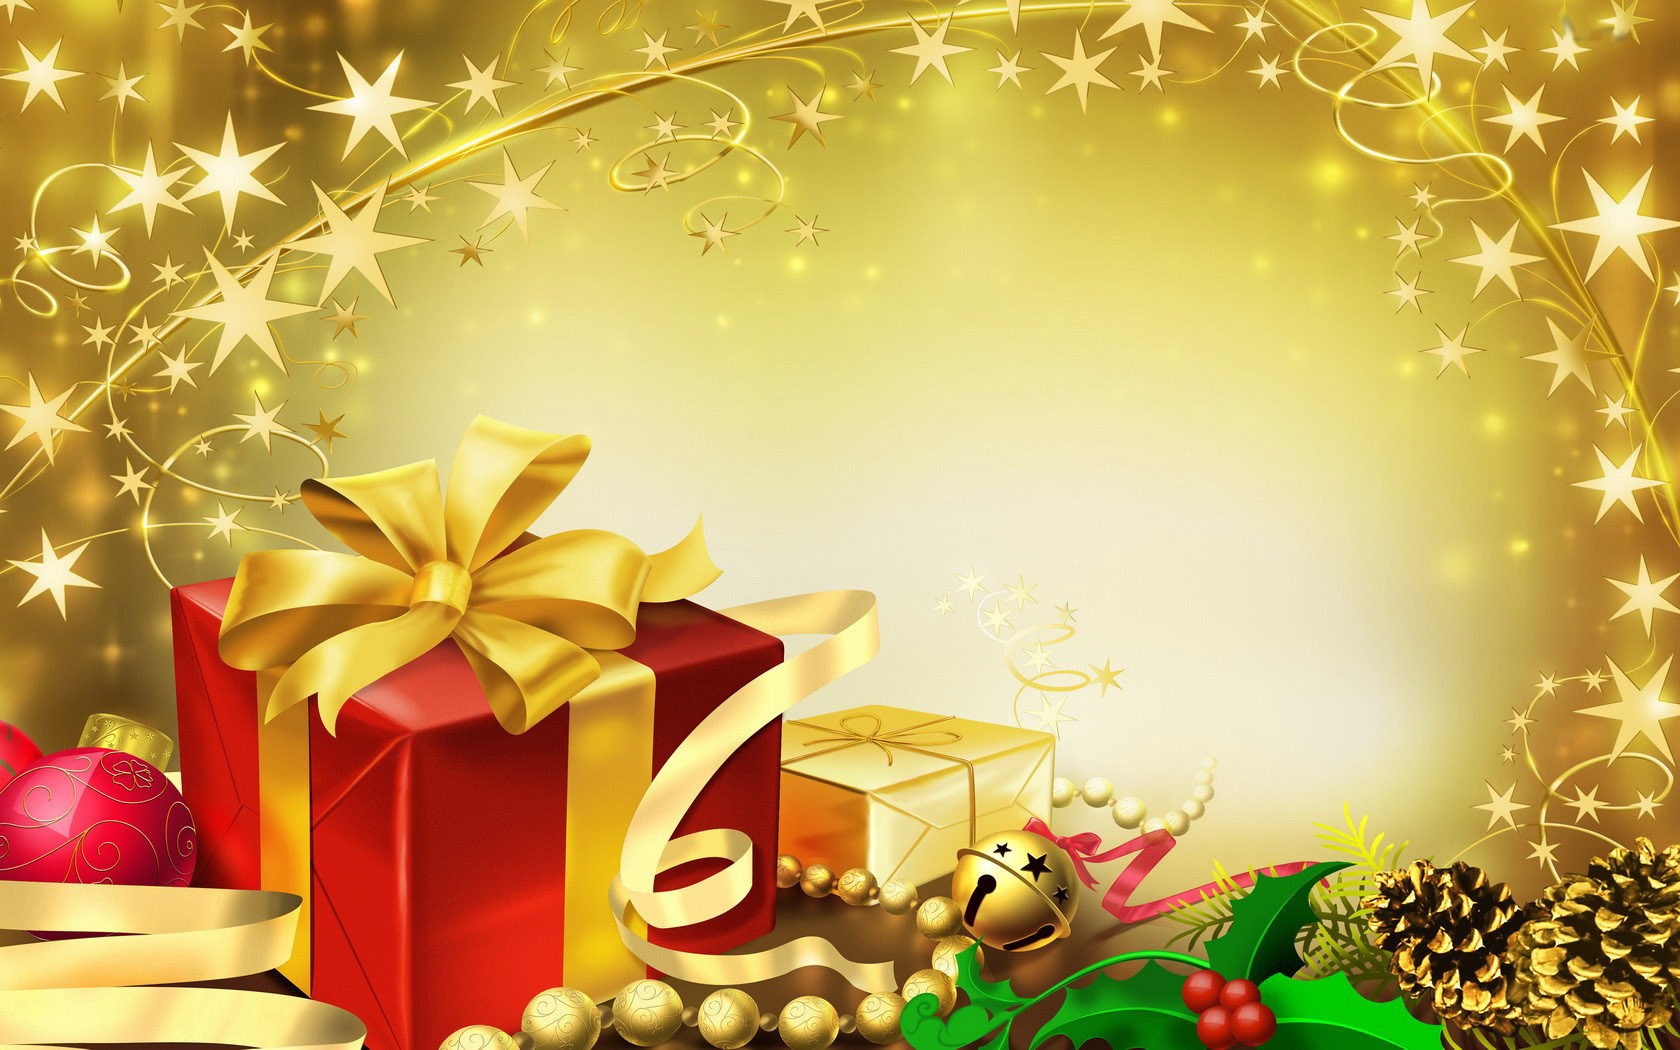 100 Best HD Christmas Wallpapers For Your Desktop